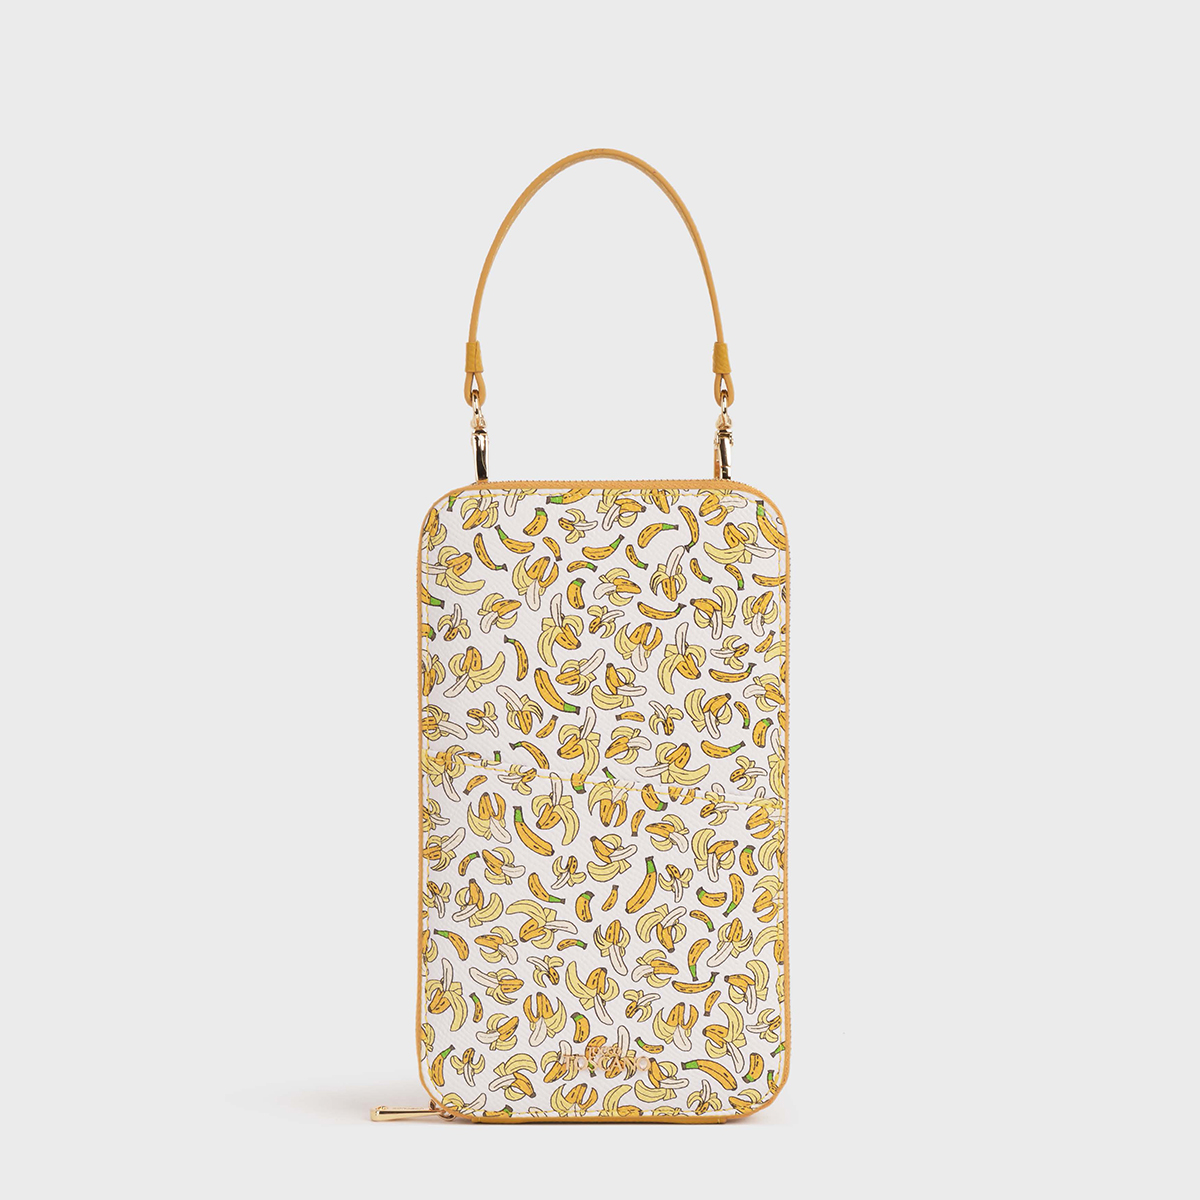 Toscano Mobile Phone Bag - Bananas